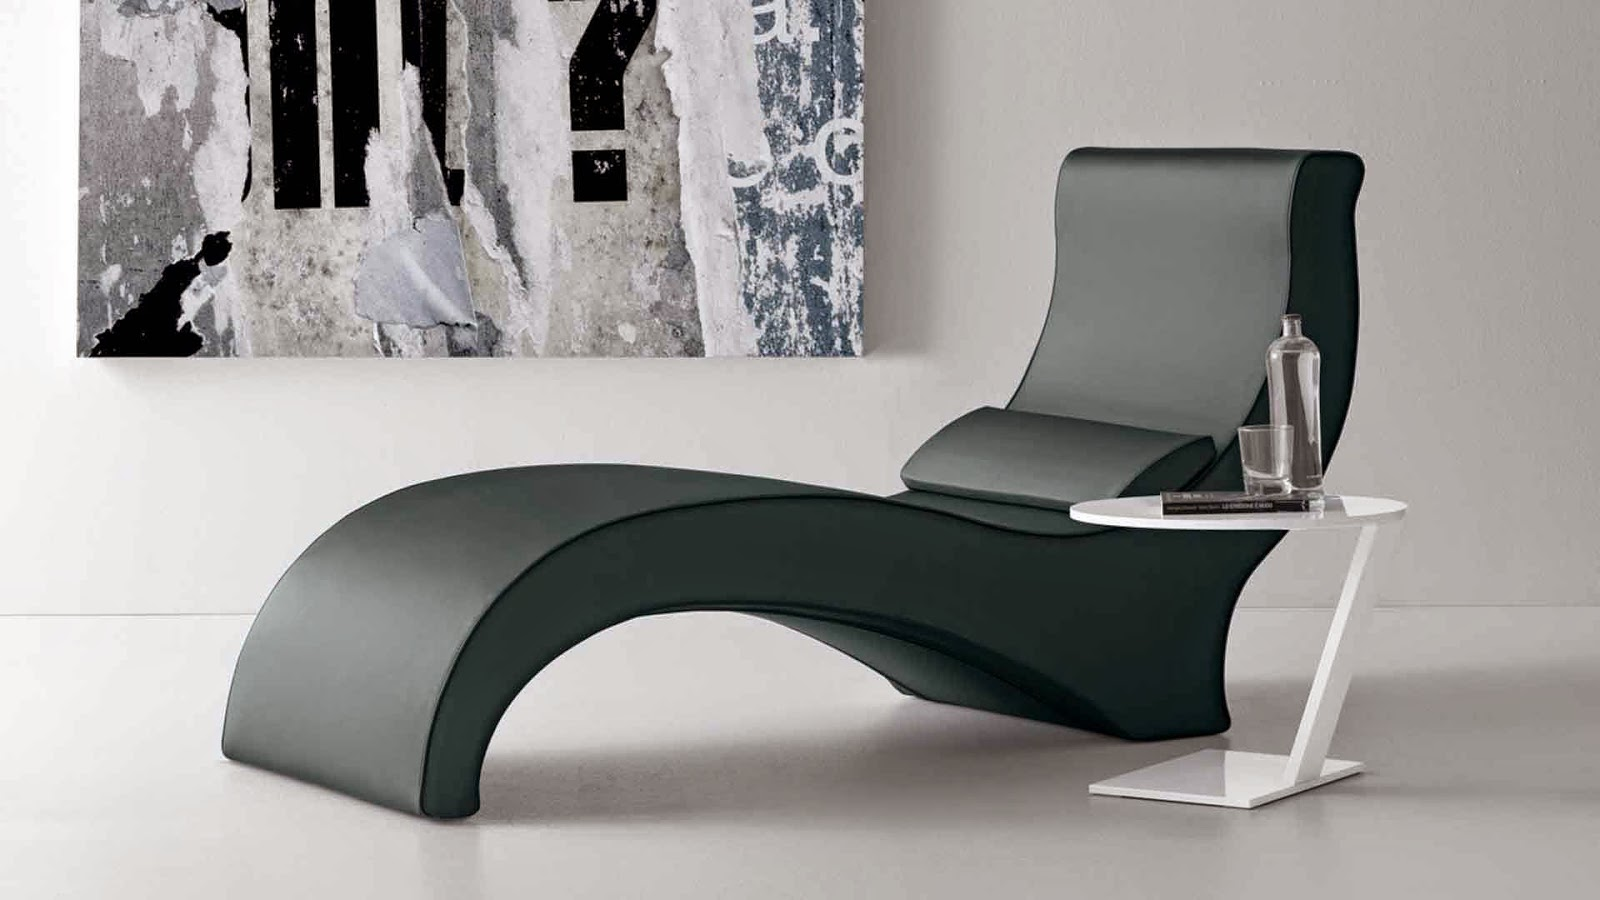 Chaise longue d interieur design 28 images 134 best for Chaise longue interieur